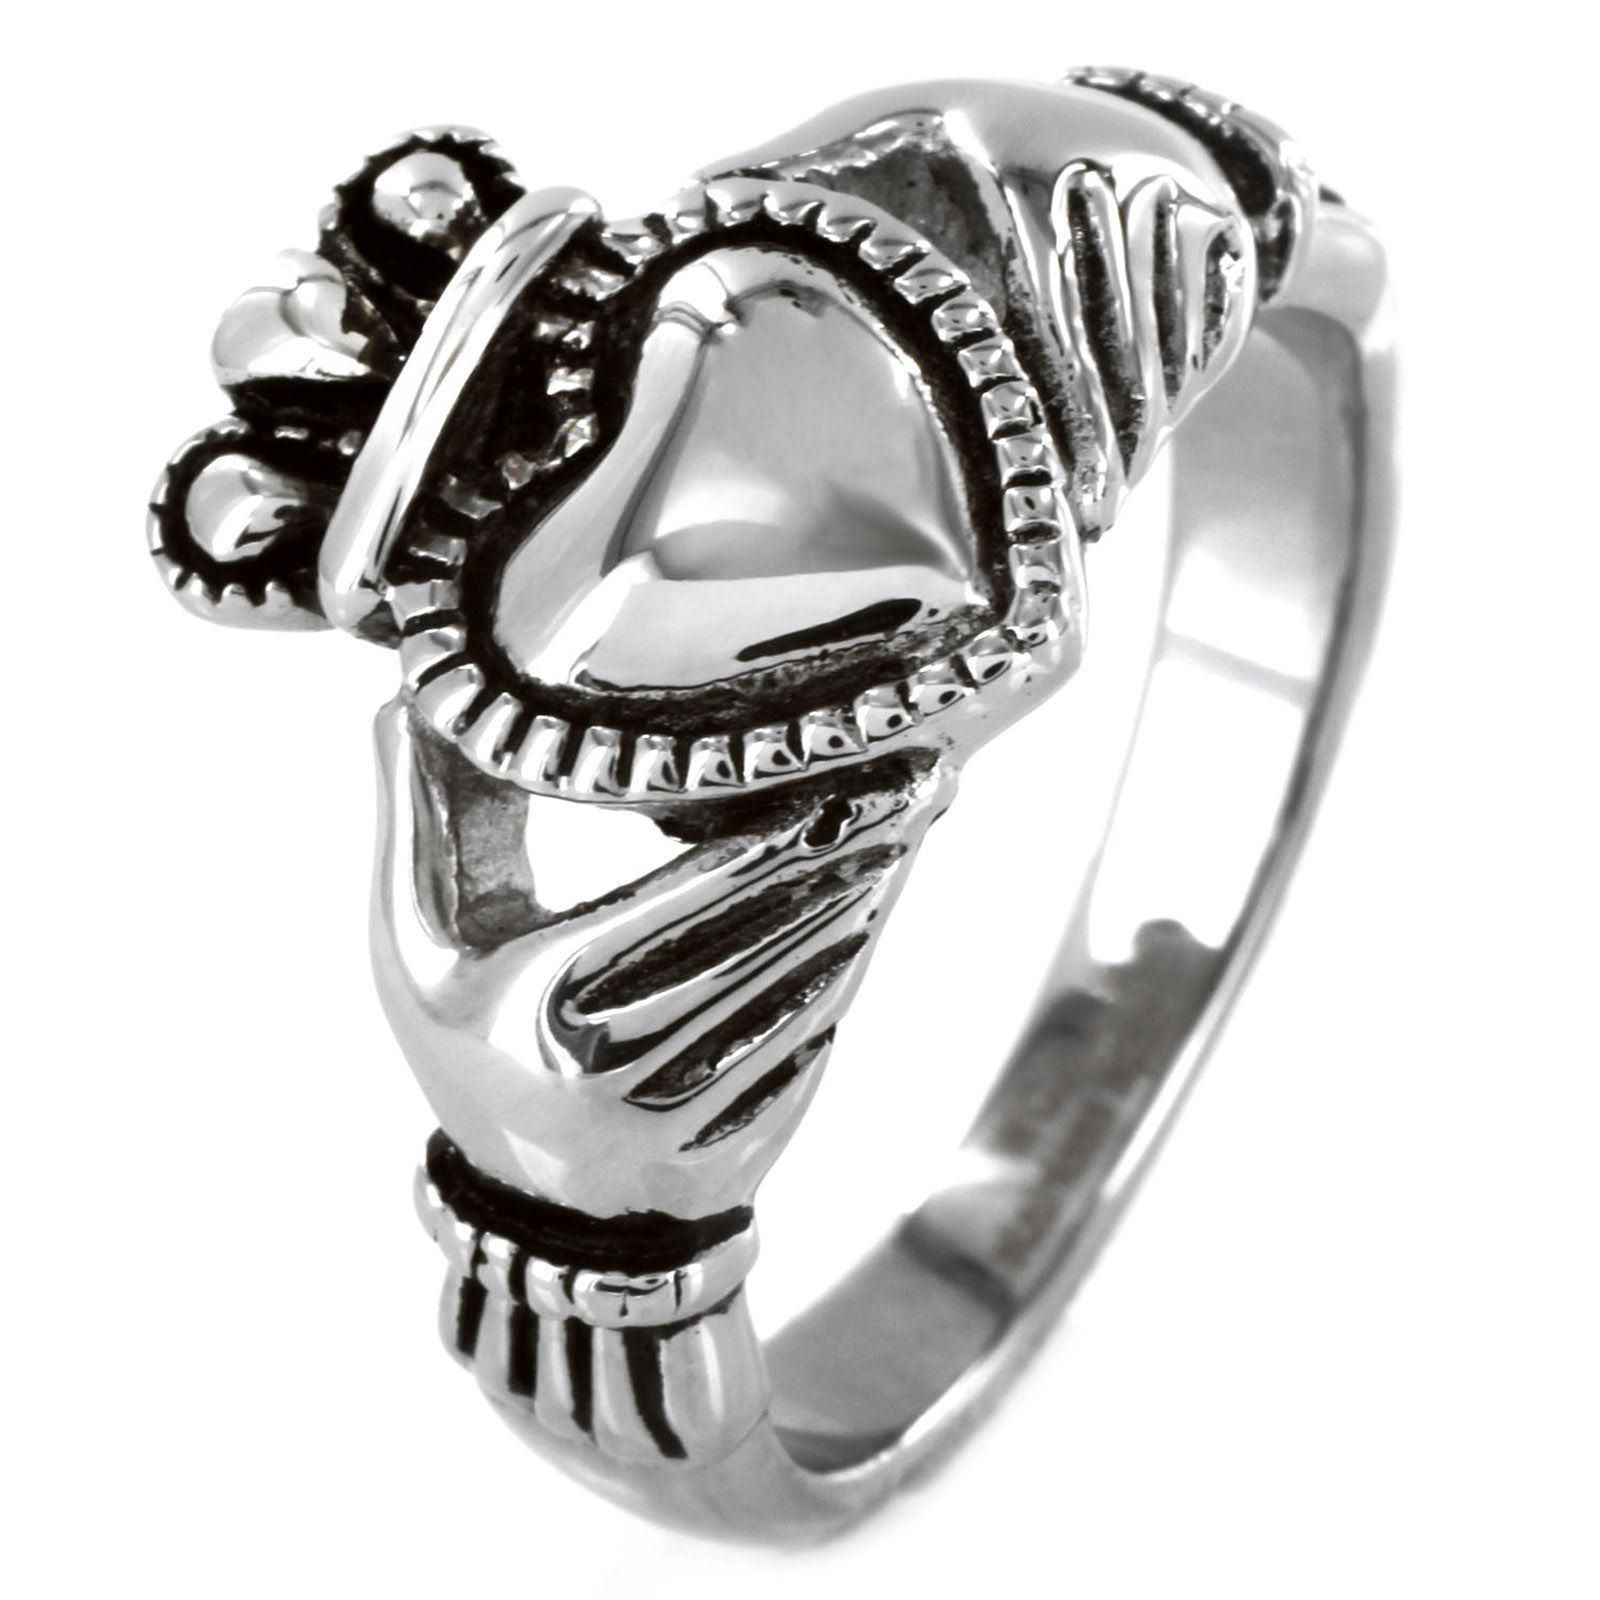 West Coast Jewelry Stainless Steel Black Outlined Irish Claddagh Ring PartNumber: 3ZZVA53692312P MfgPartNumber: WCJ-SS355